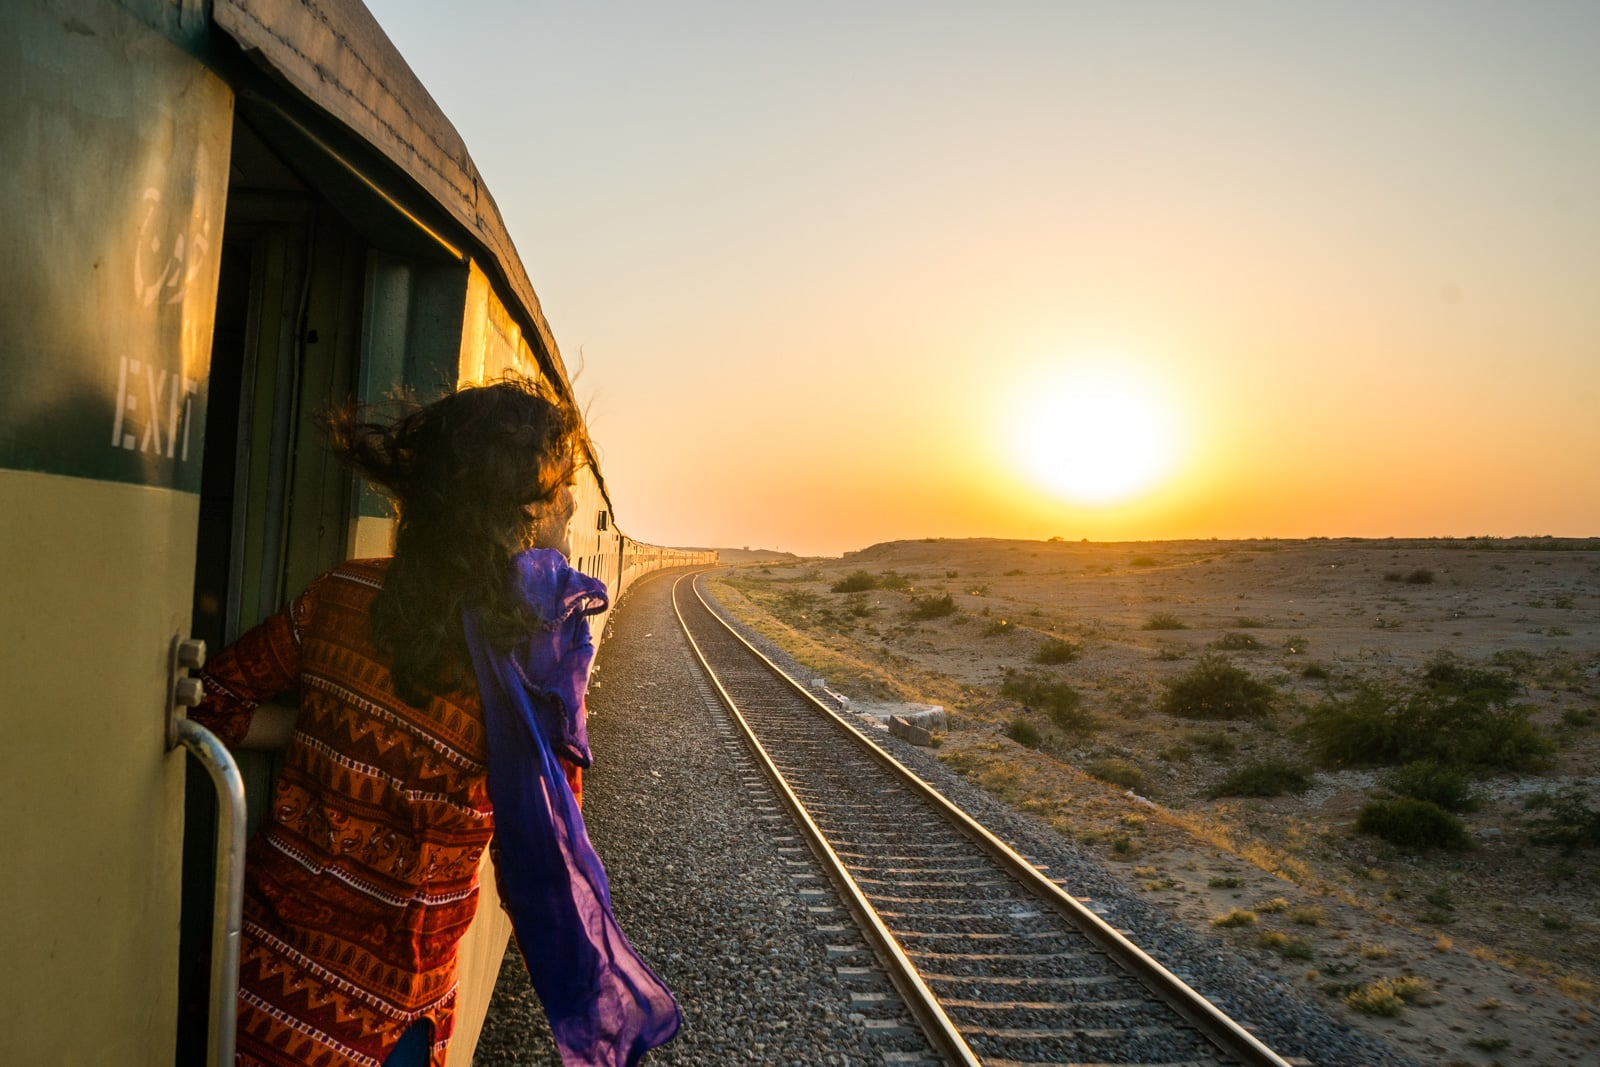 First timers guide to train travel in Pakistan  Lost